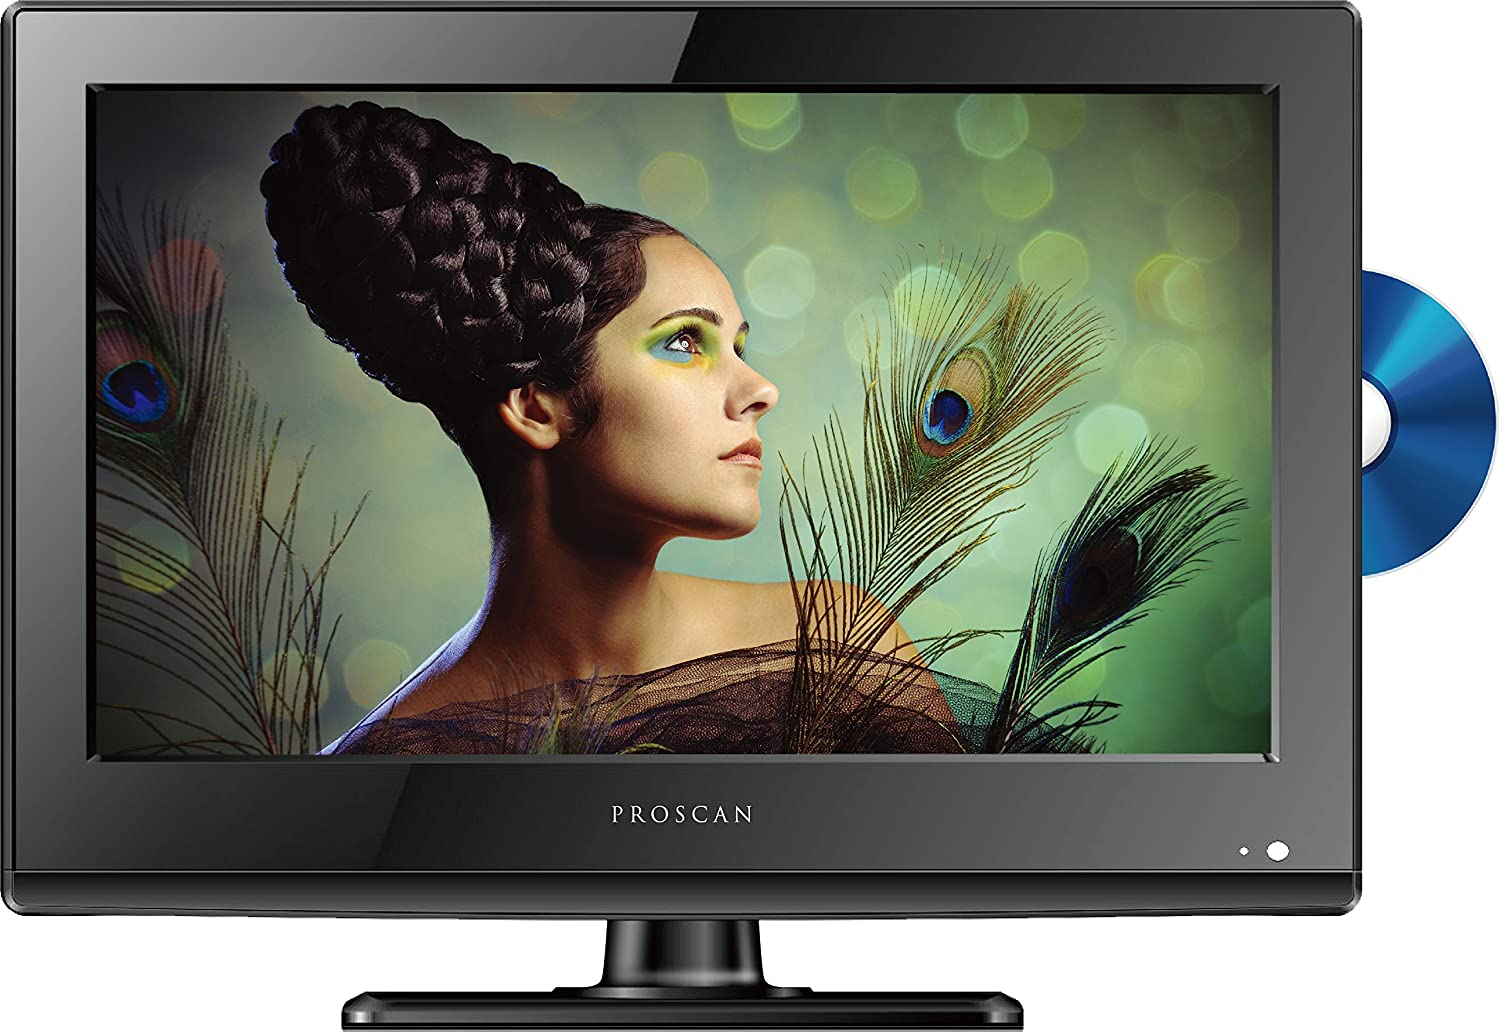 Proscan PLEDV1520 15-Inch 720p 60Hz LED TV-DVD Combo